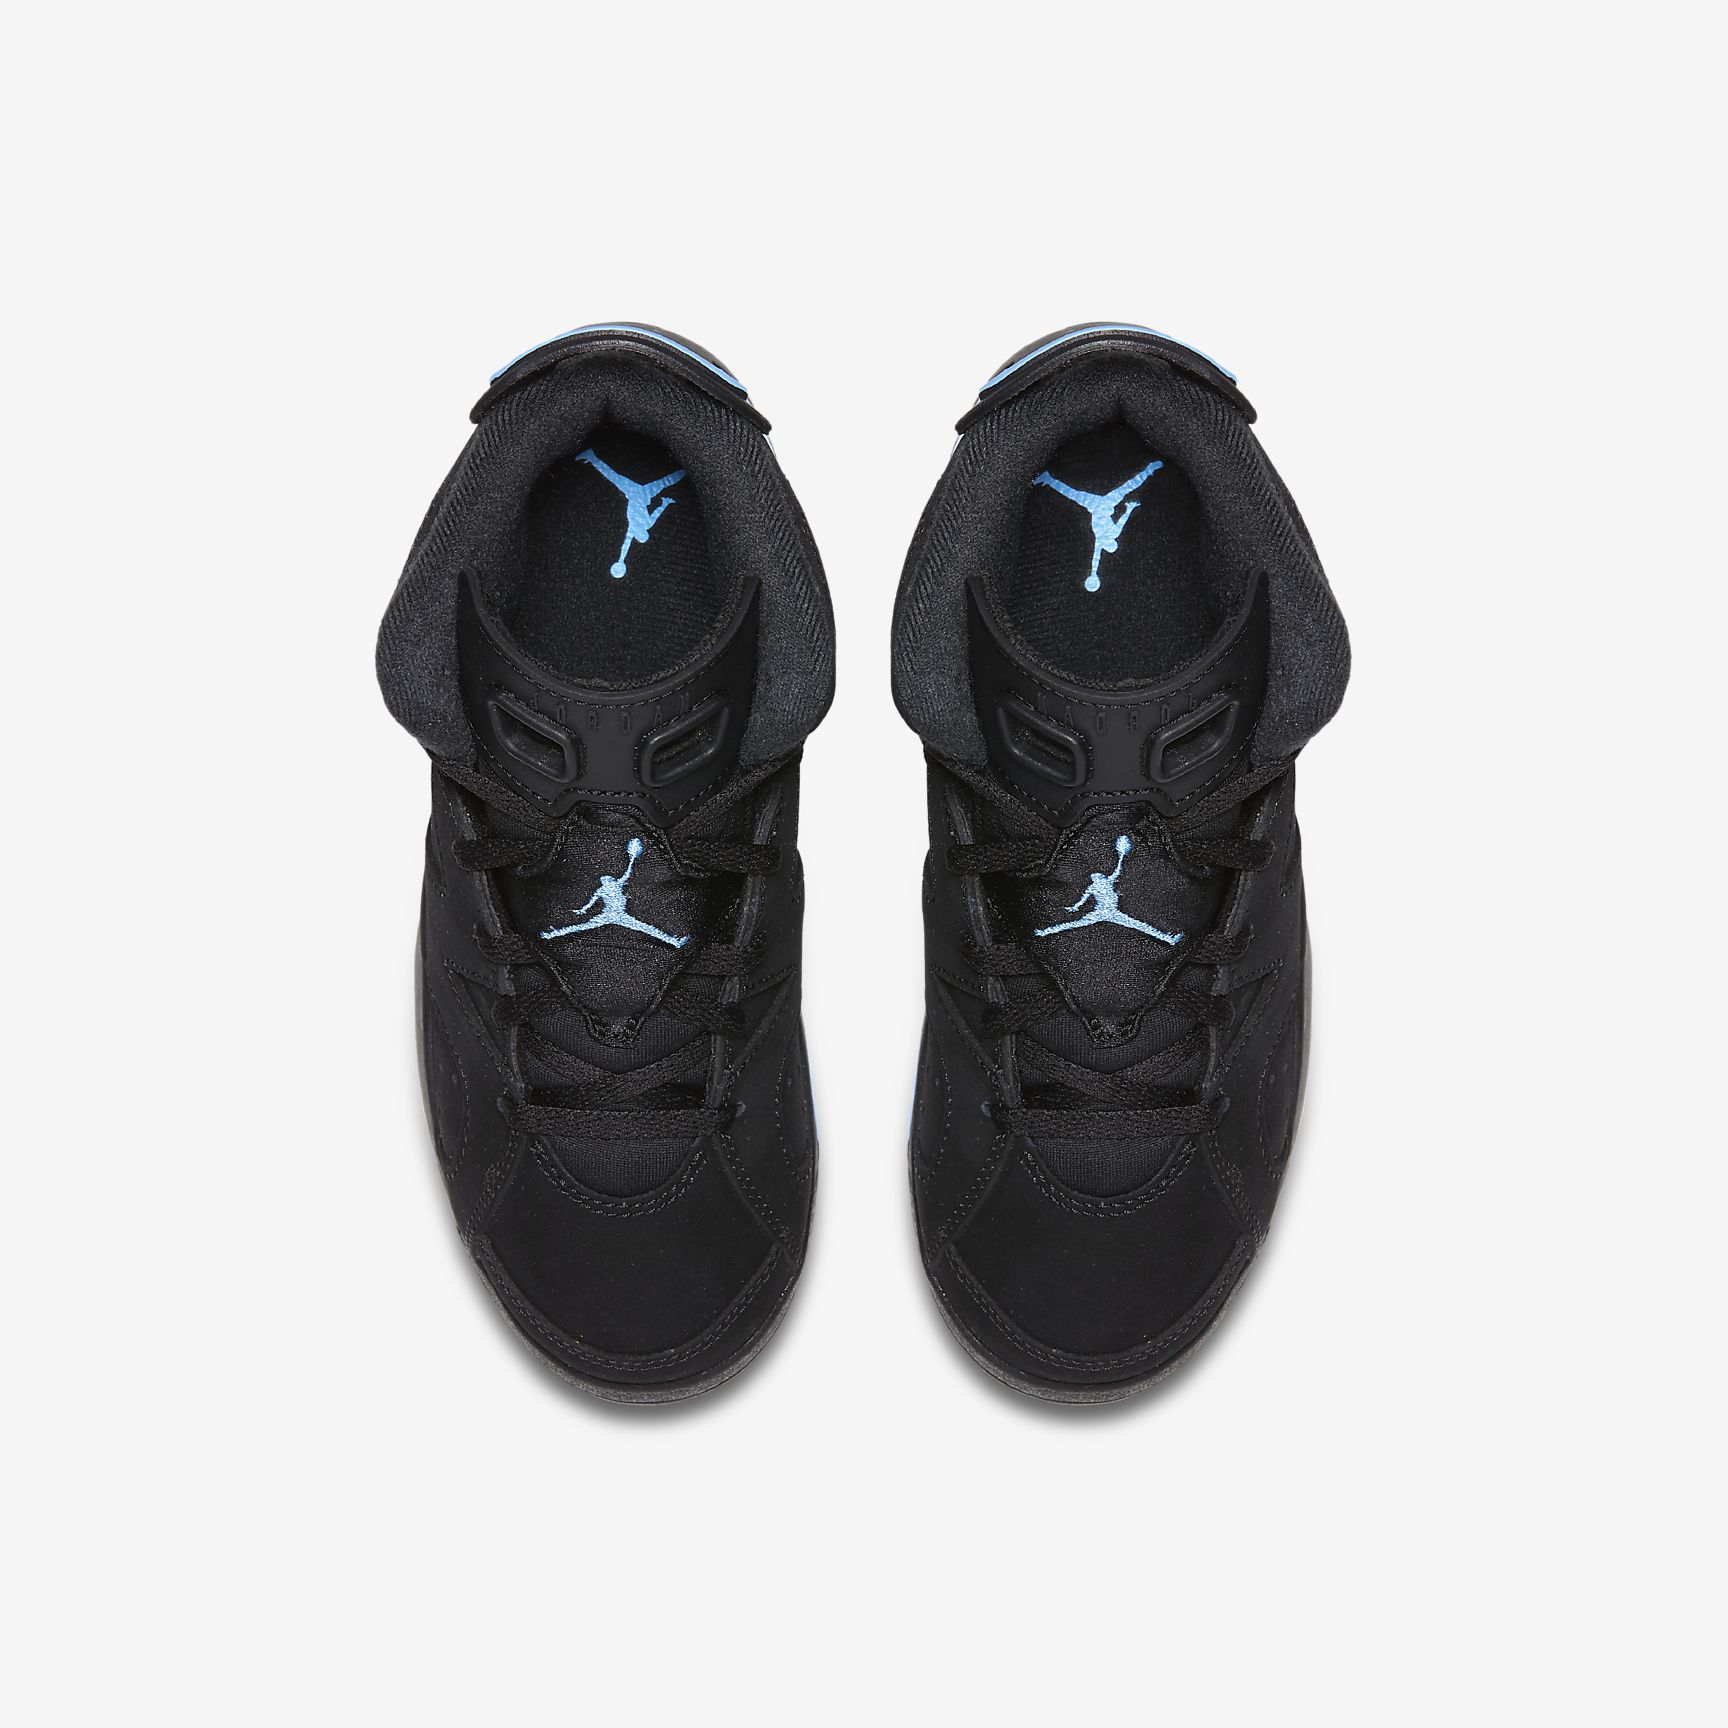 the-air-jordan-6-retro-mens-shoe-4-kids